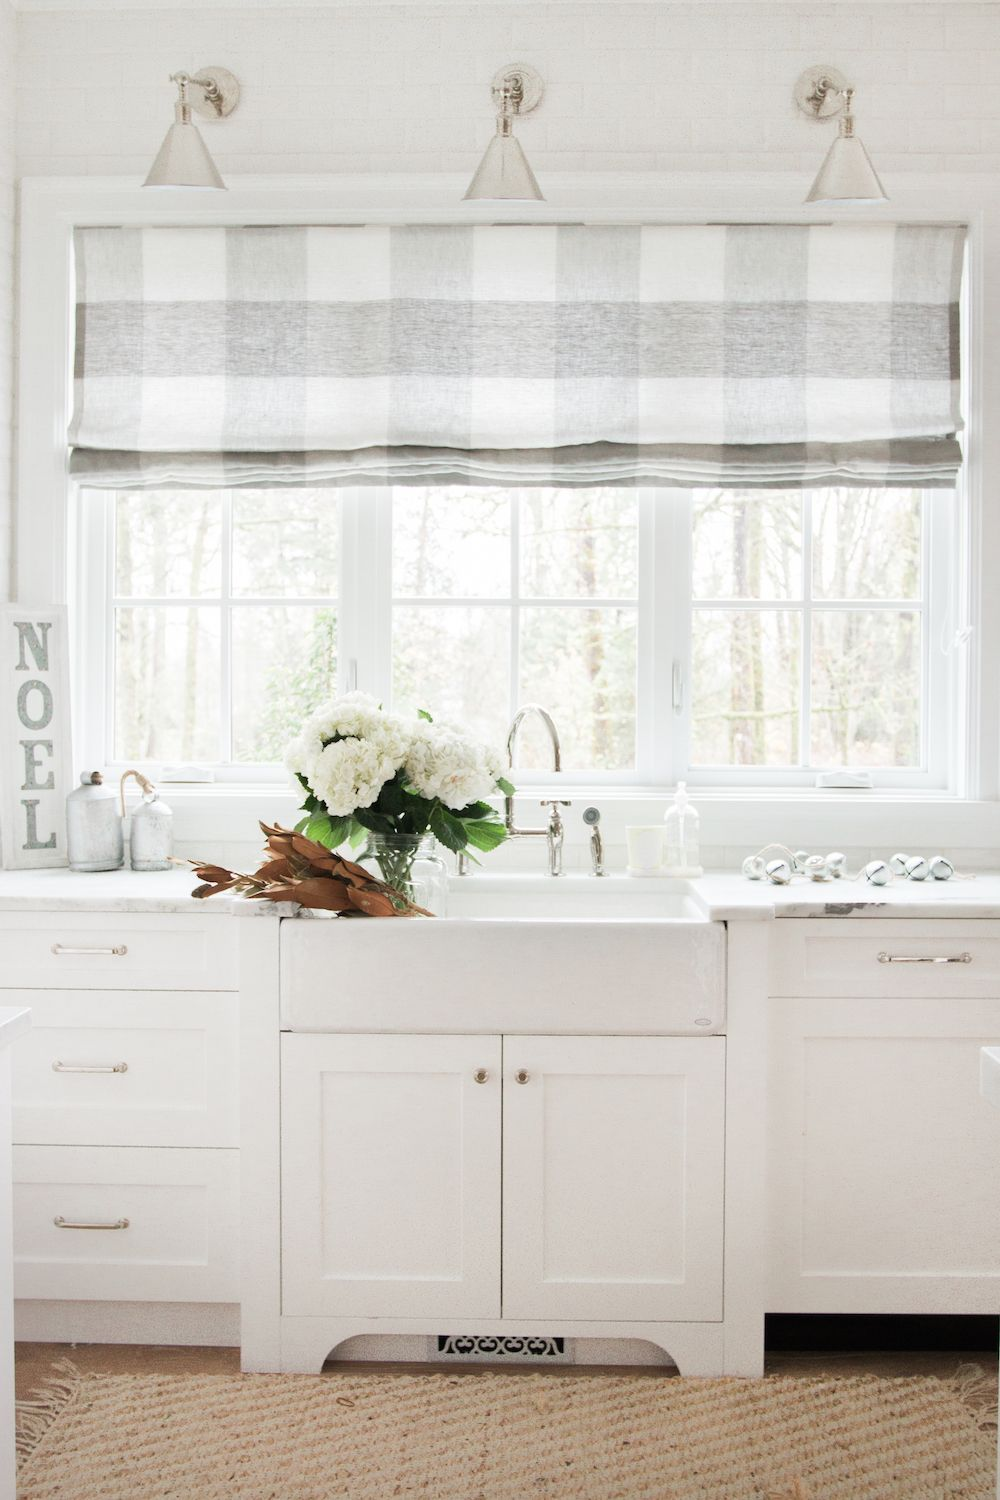 Over the sink kitchen window treatments   best area rugs for kitchen design ideas u remodel pictures